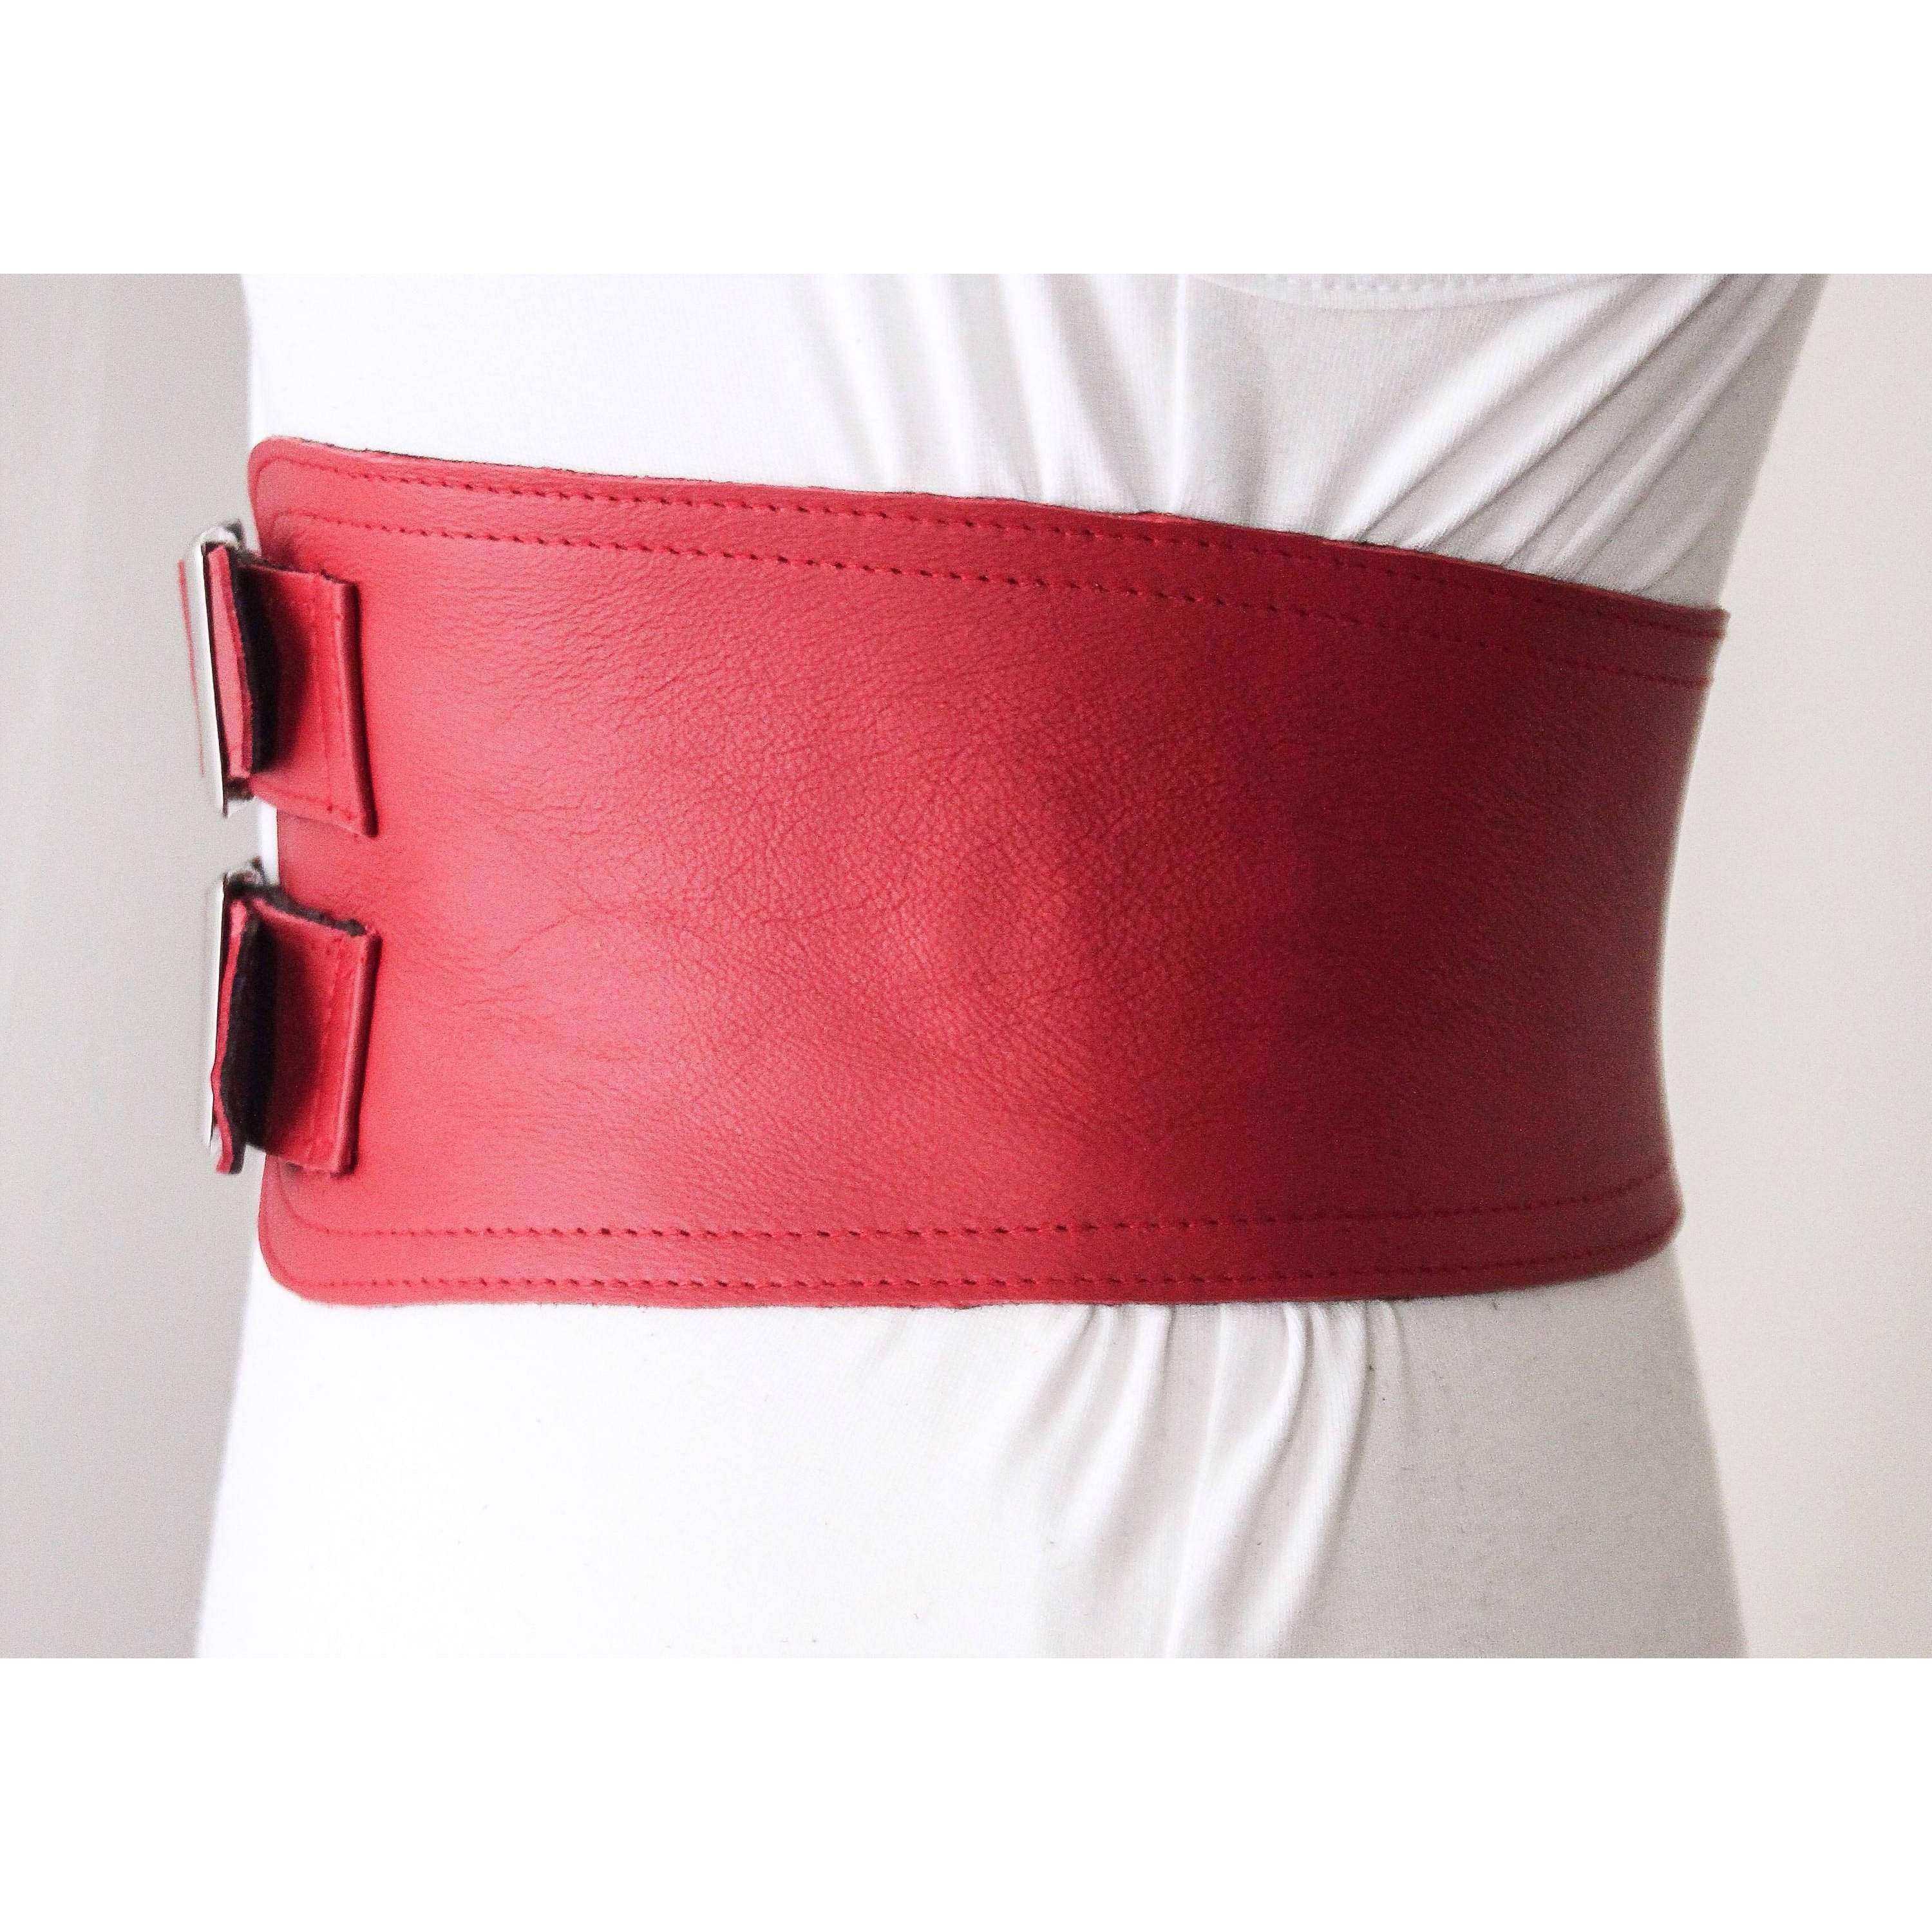 Red Corset Leather Two Gold Buckle Belt | Leather Red Corset Belt - loveyaayaa